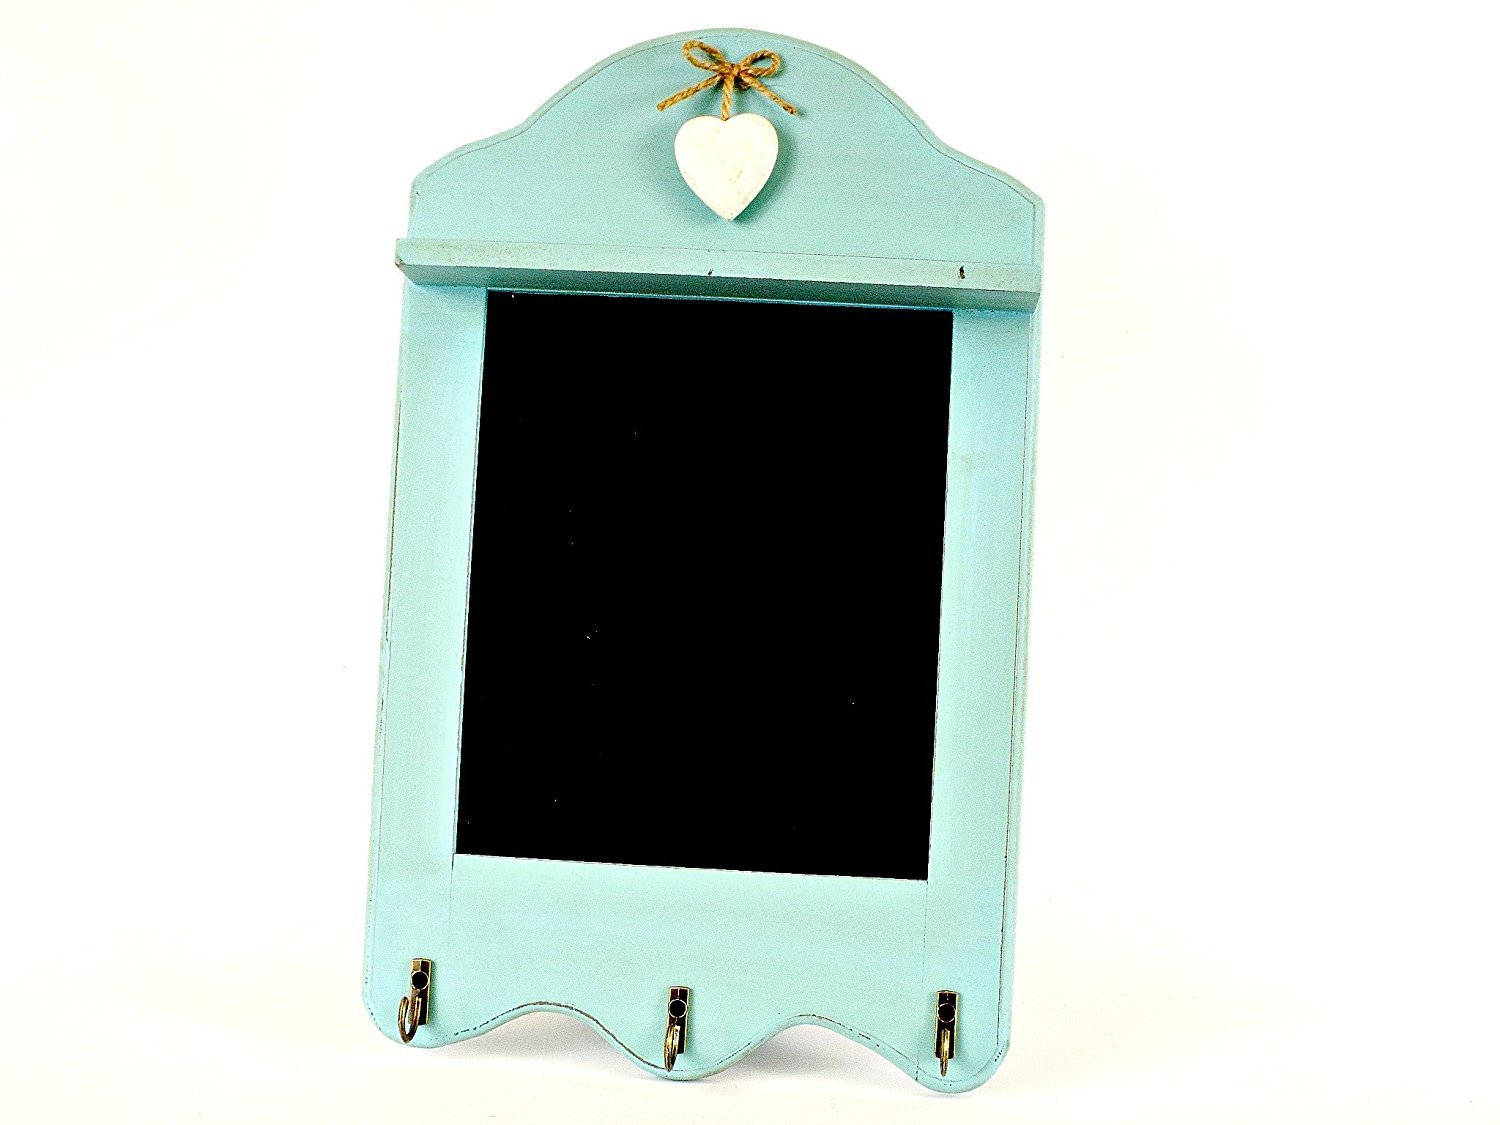 CHALKBOARD DUCK EGG BLUE WITH HEART AND HOOKS MEMO BOARD KITCHEN